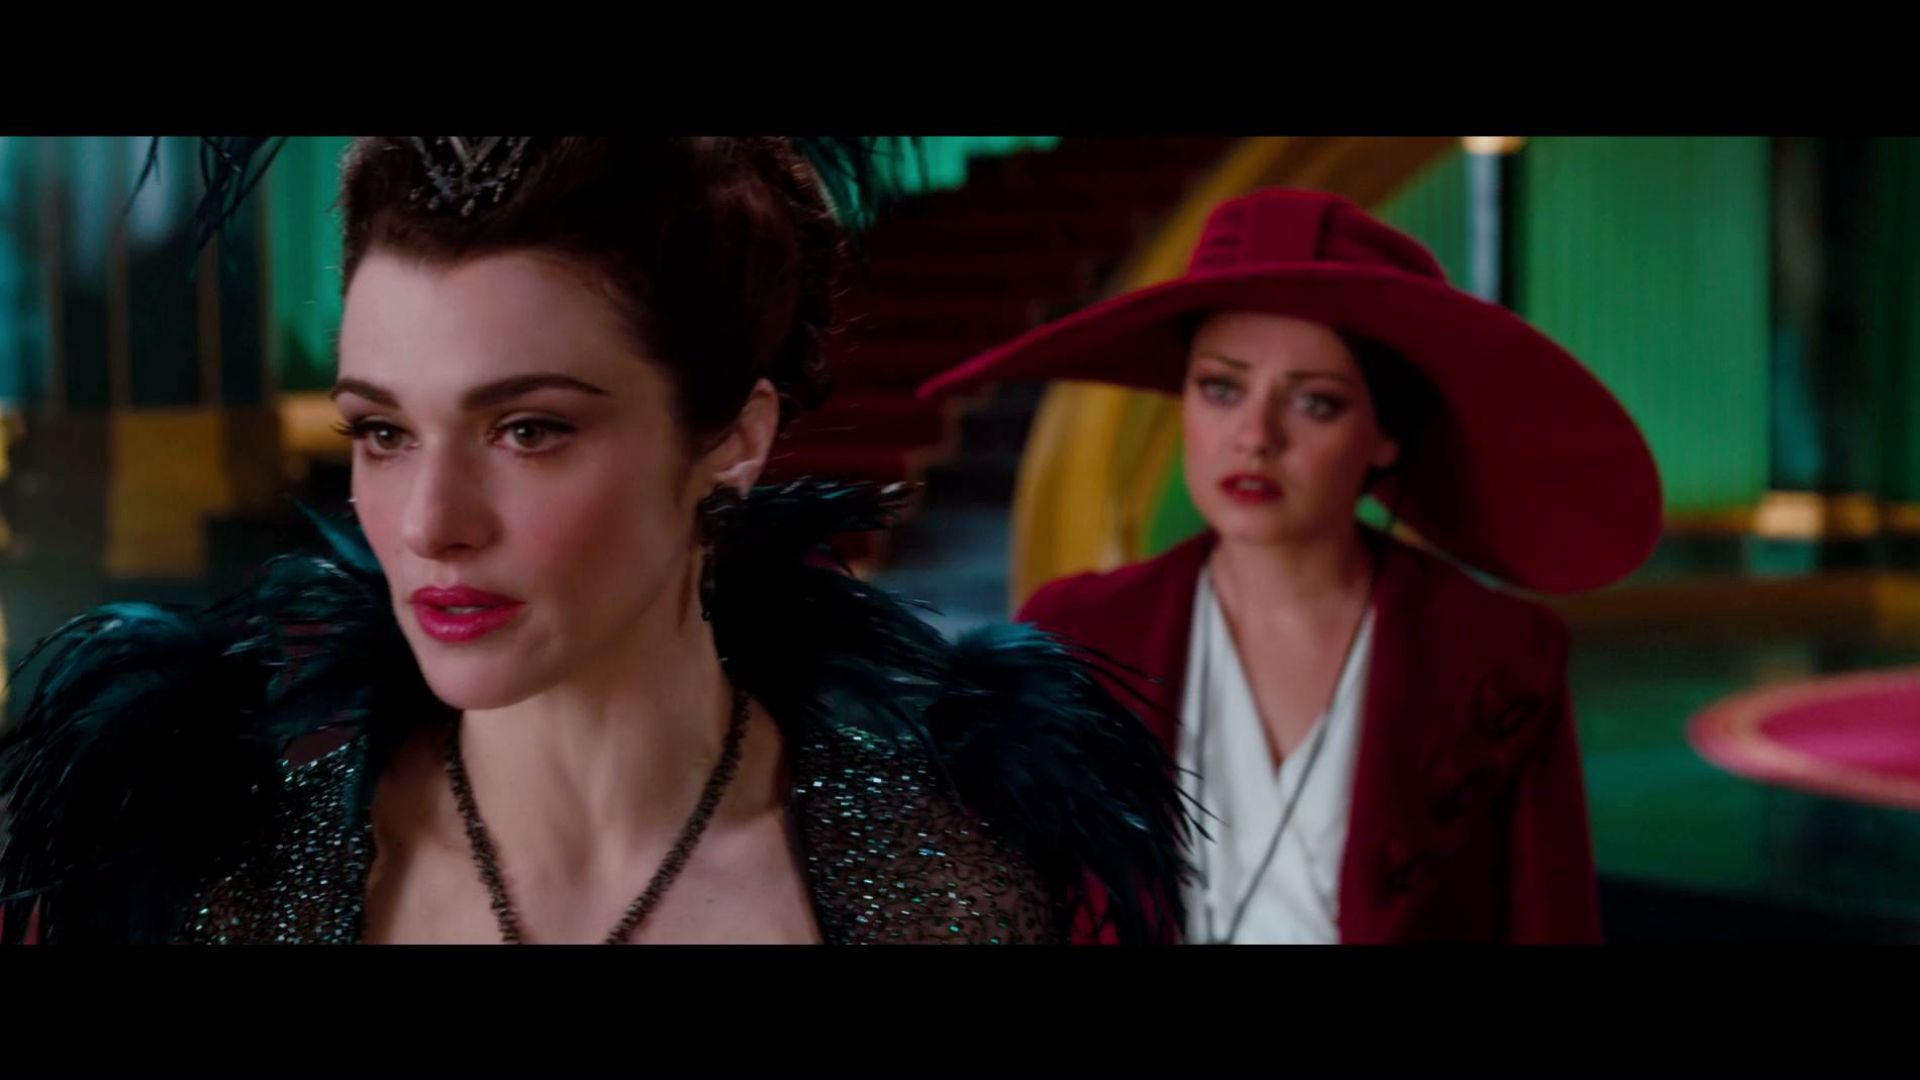 Mila Kunis: I'm not wicked! Oz the Great and Powerful